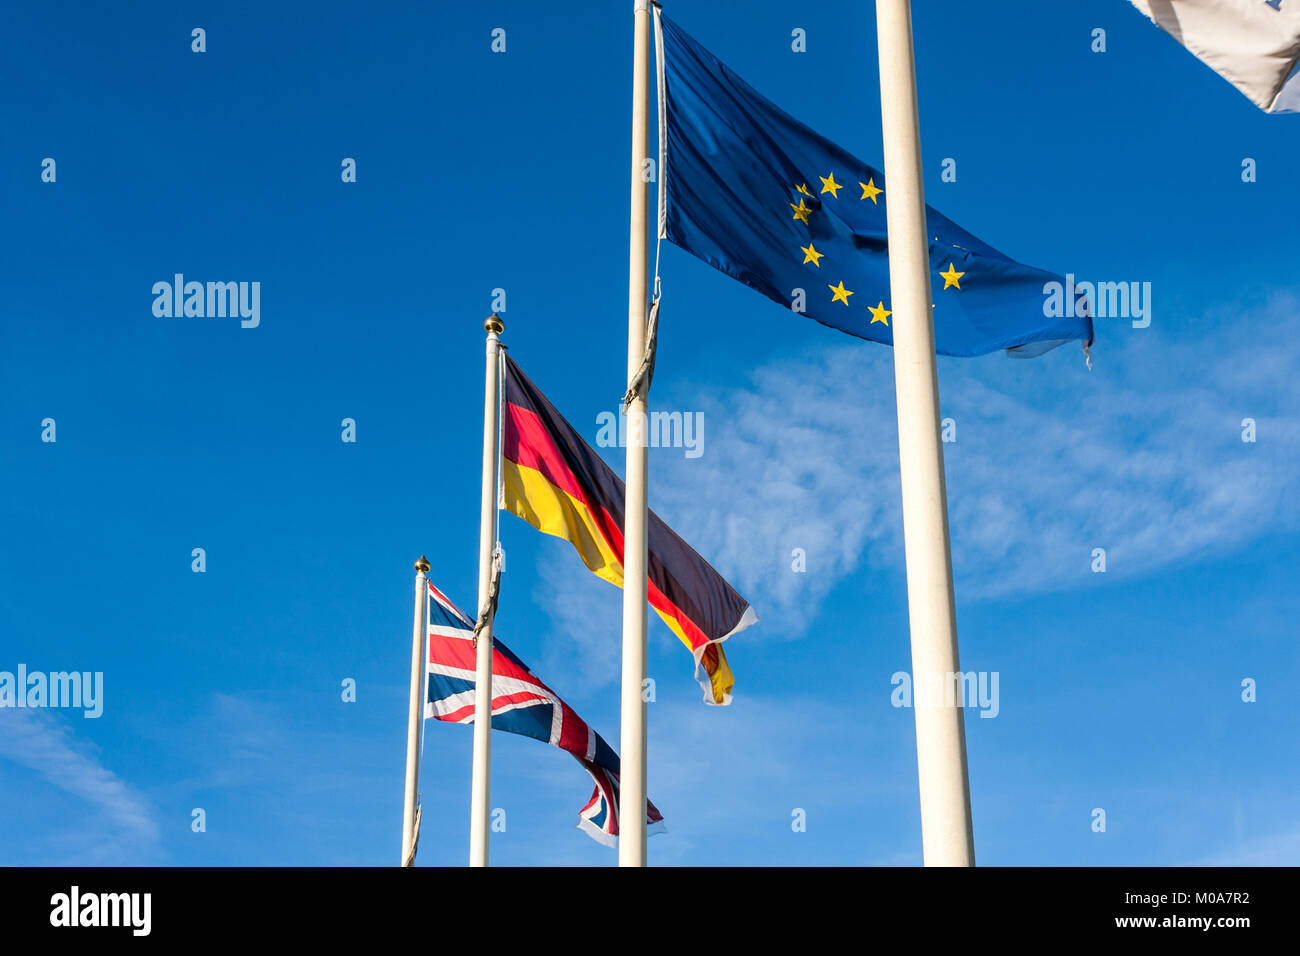 EU Flag, German Flag and UK Flag fly side by side in the breeze - Stock Image